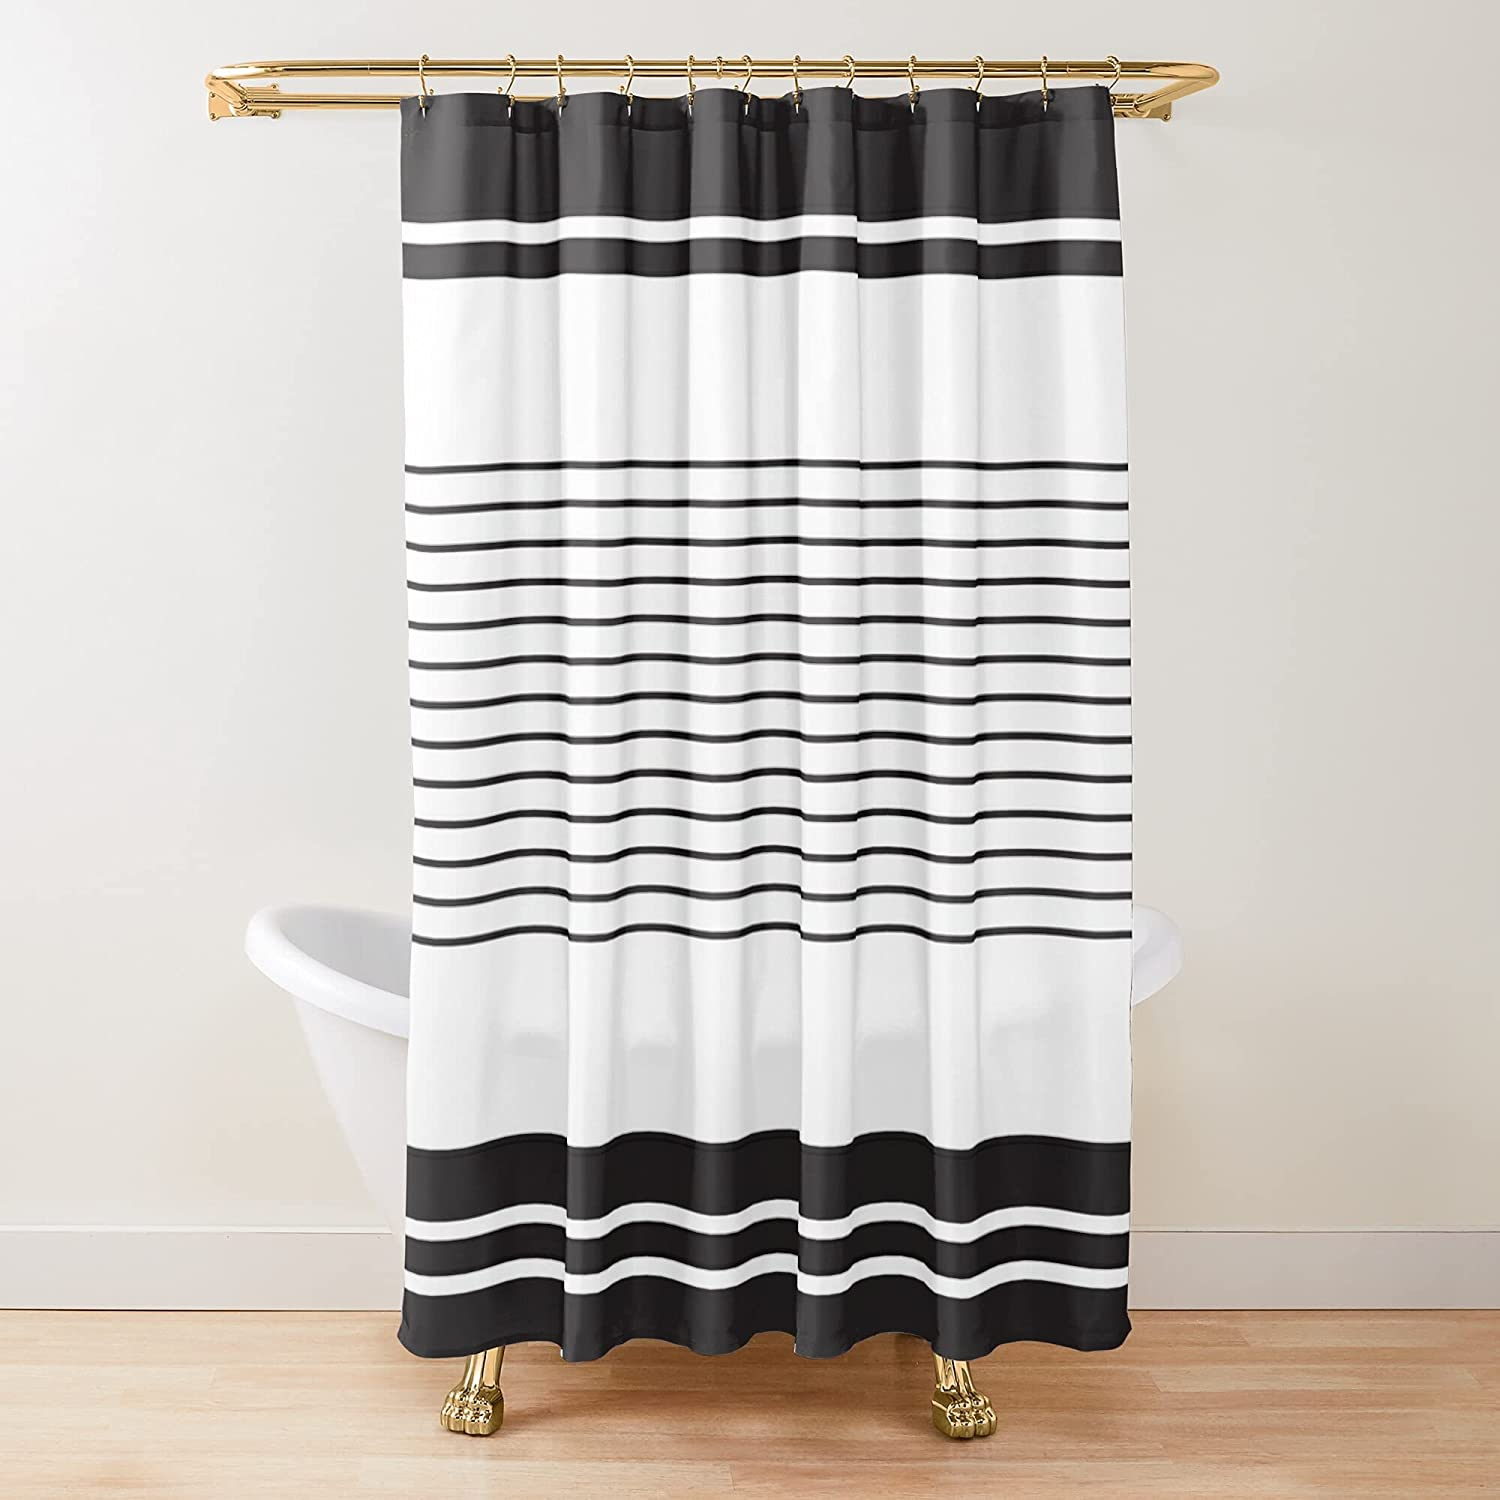 Black El Paso Mall and White Max 43% OFF Quilt Pattern Fabric Printed Shower Cu Curtains